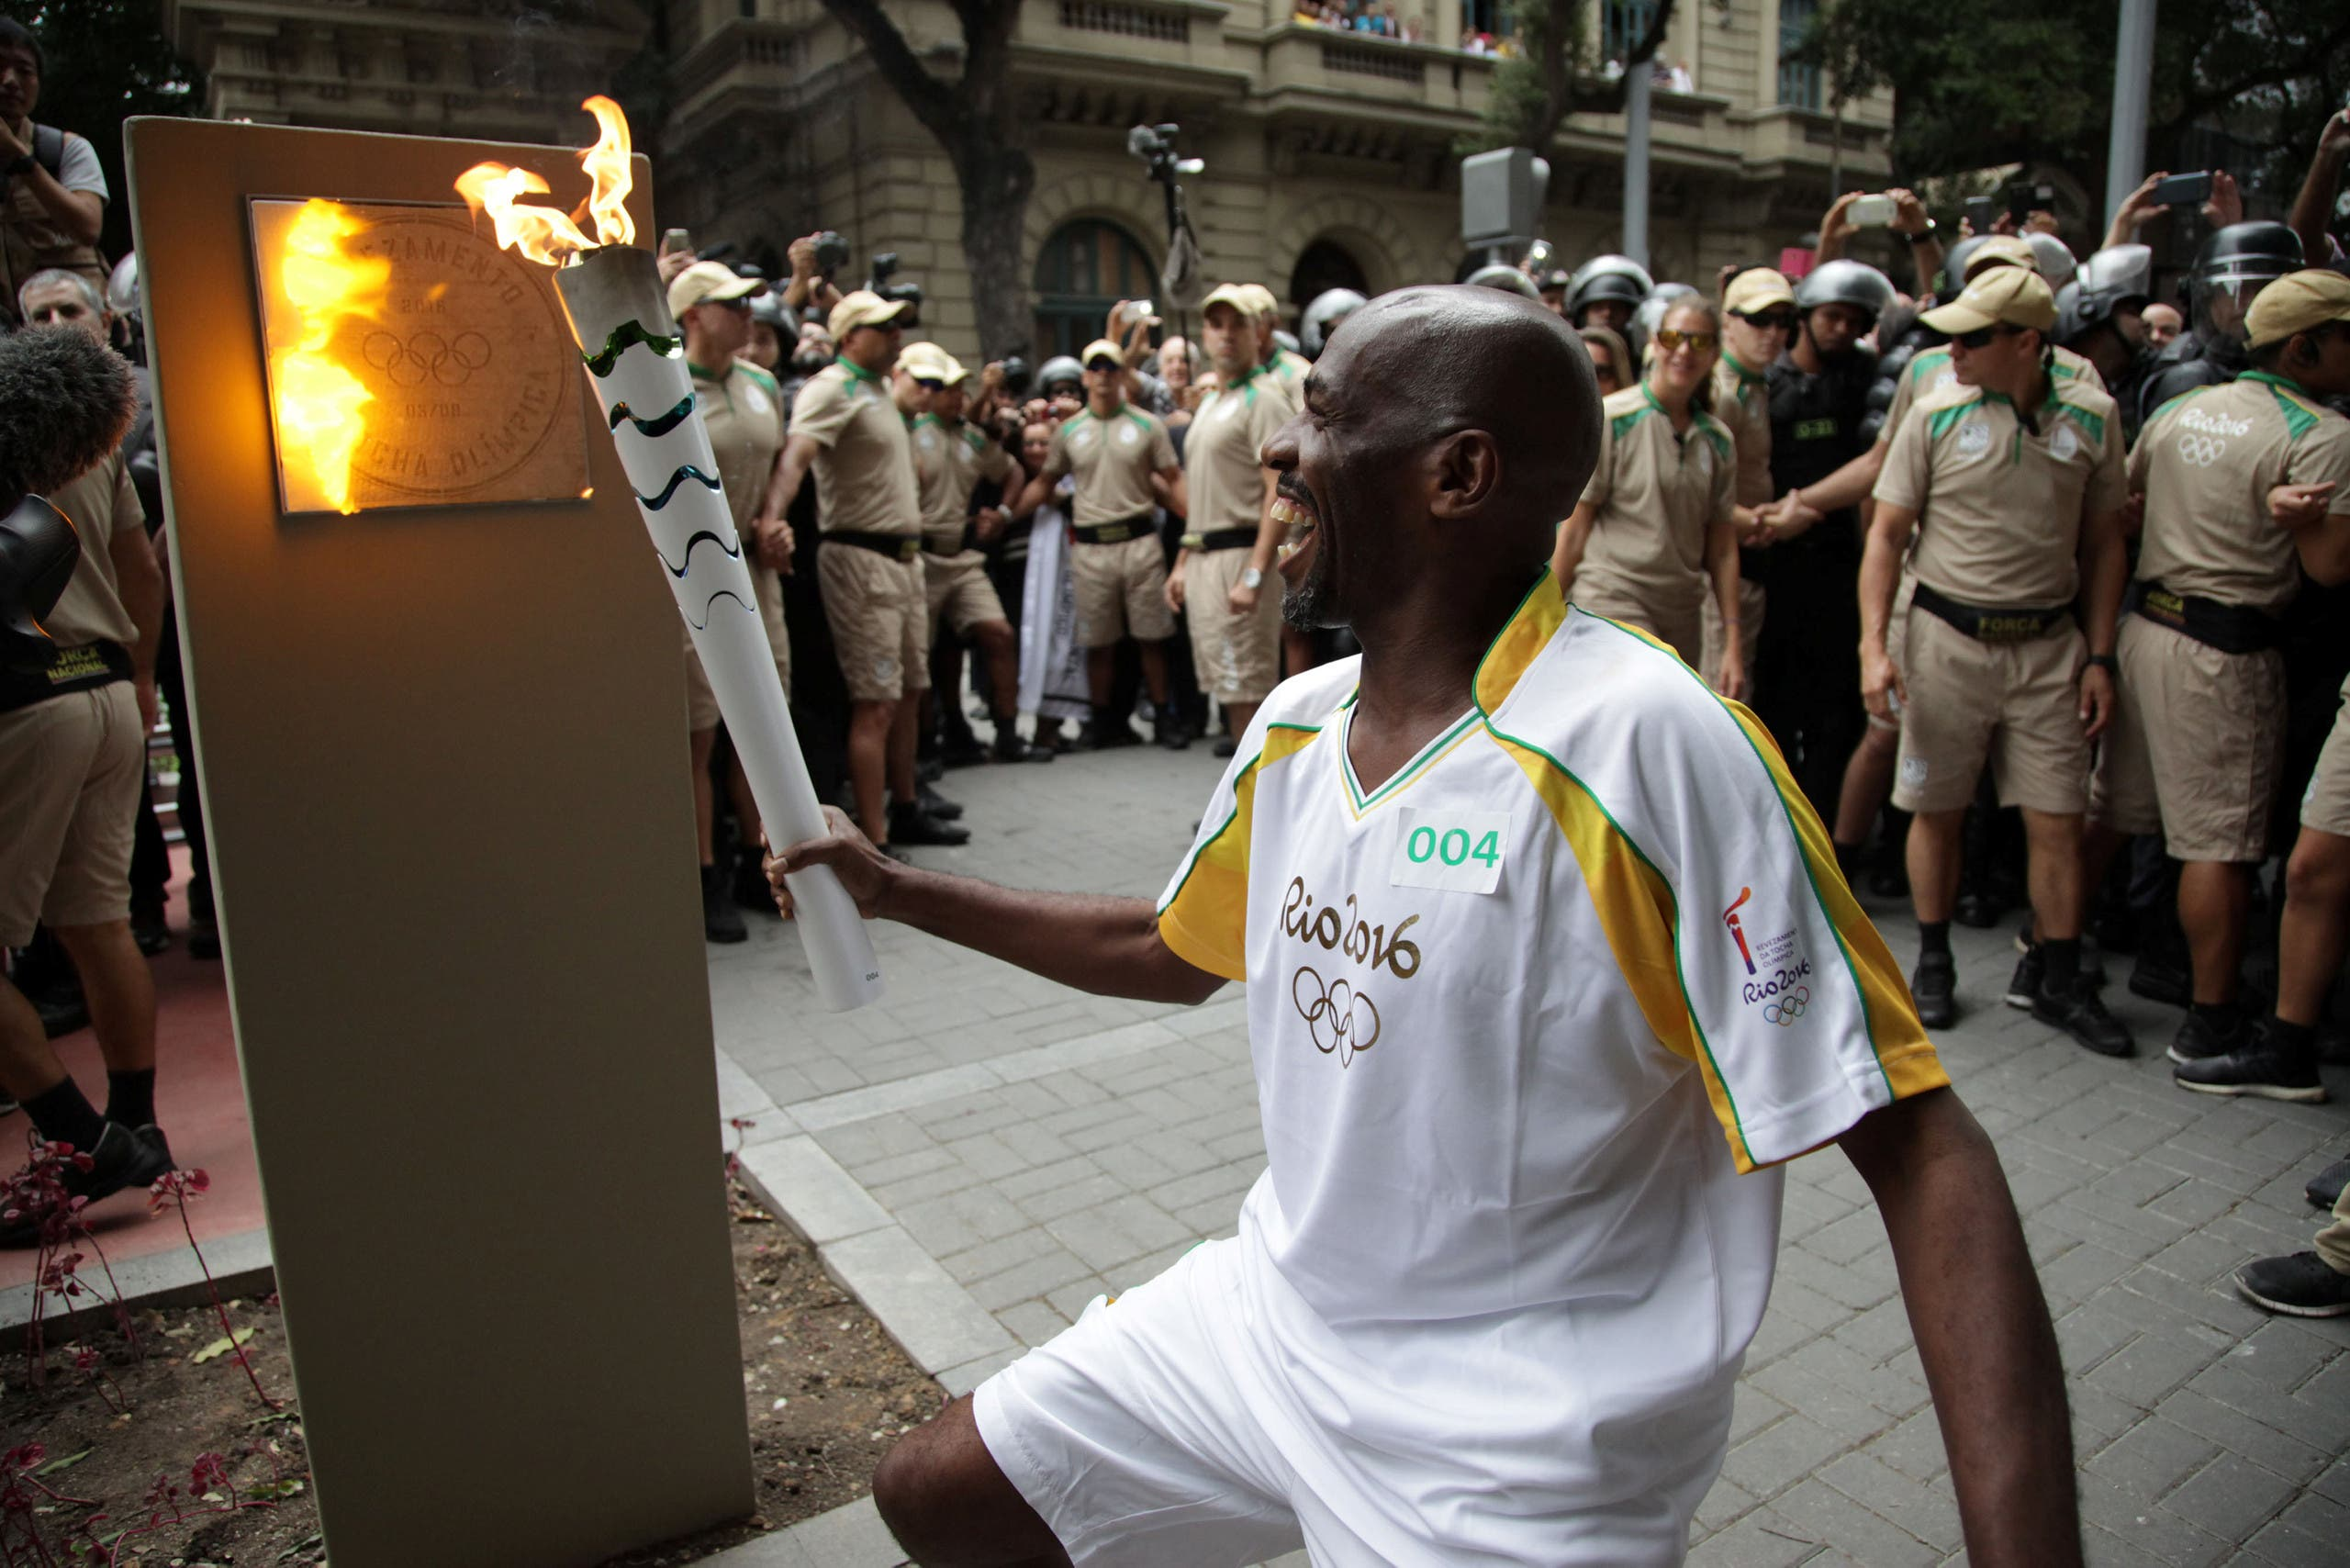 Street sweeper Renato Sorriso smiles while lighting the first of five posts with the Olympic torch in Rio de Janeiro. (Reuters)